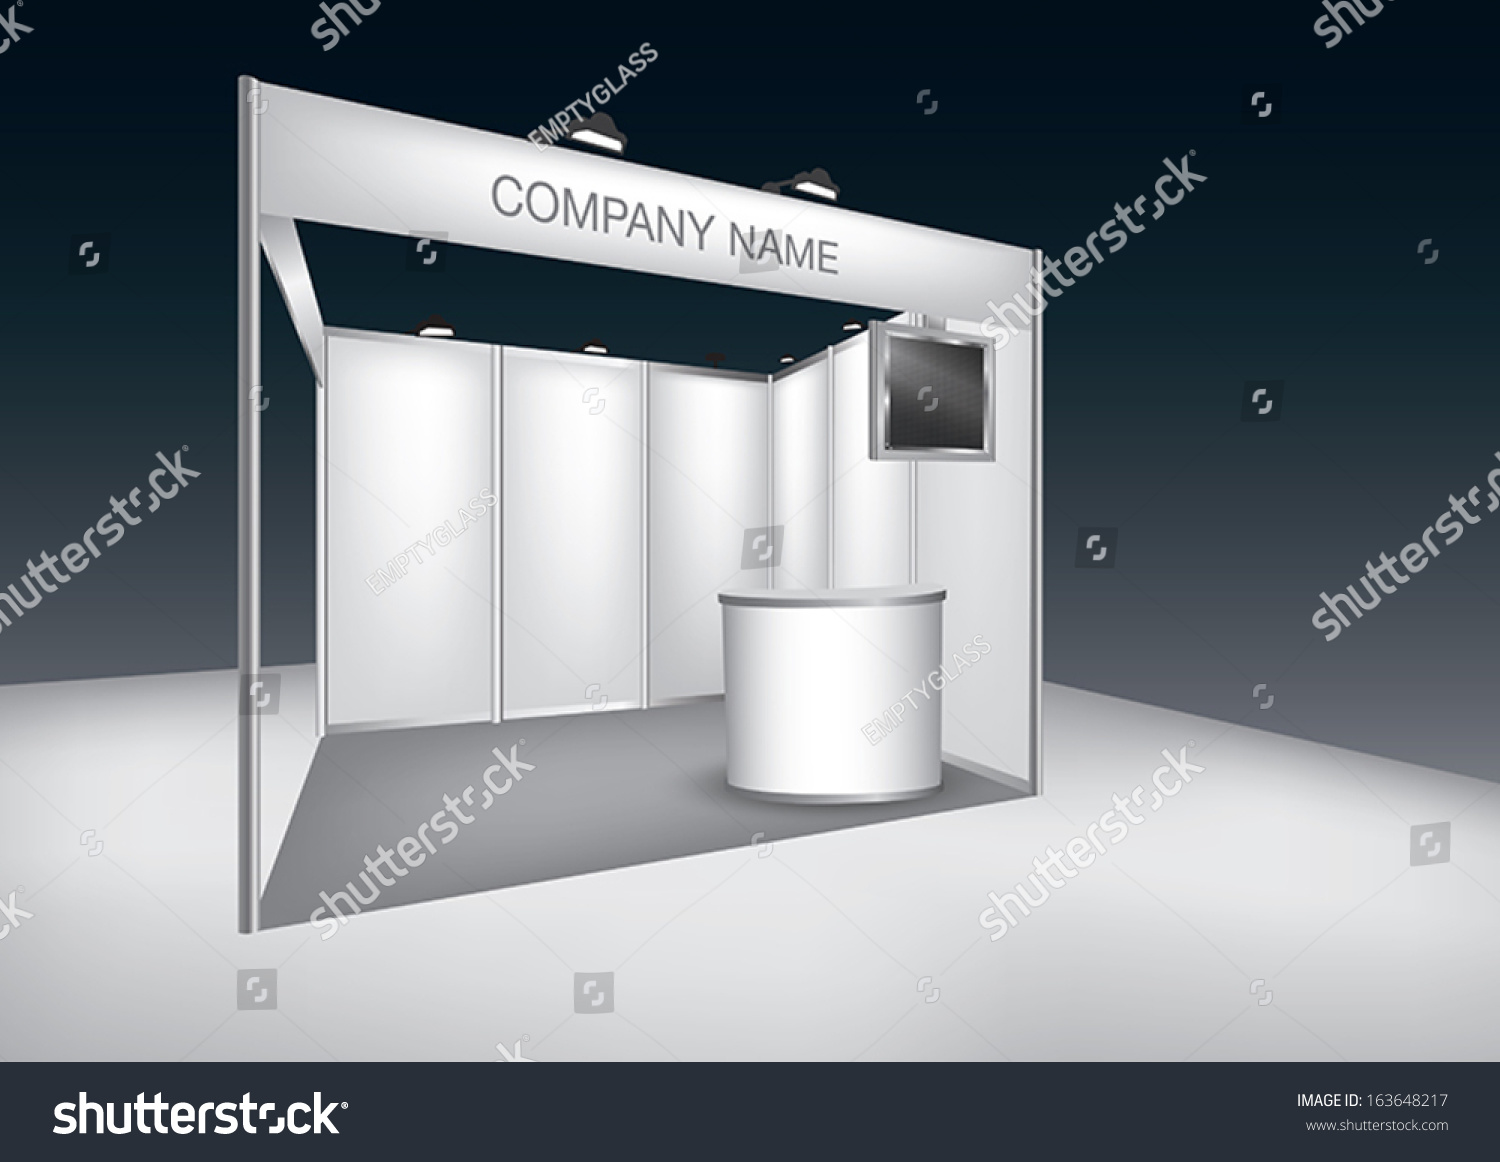 Simple Exhibition Stand Vector : Vector blank trade exhibition stand led stock